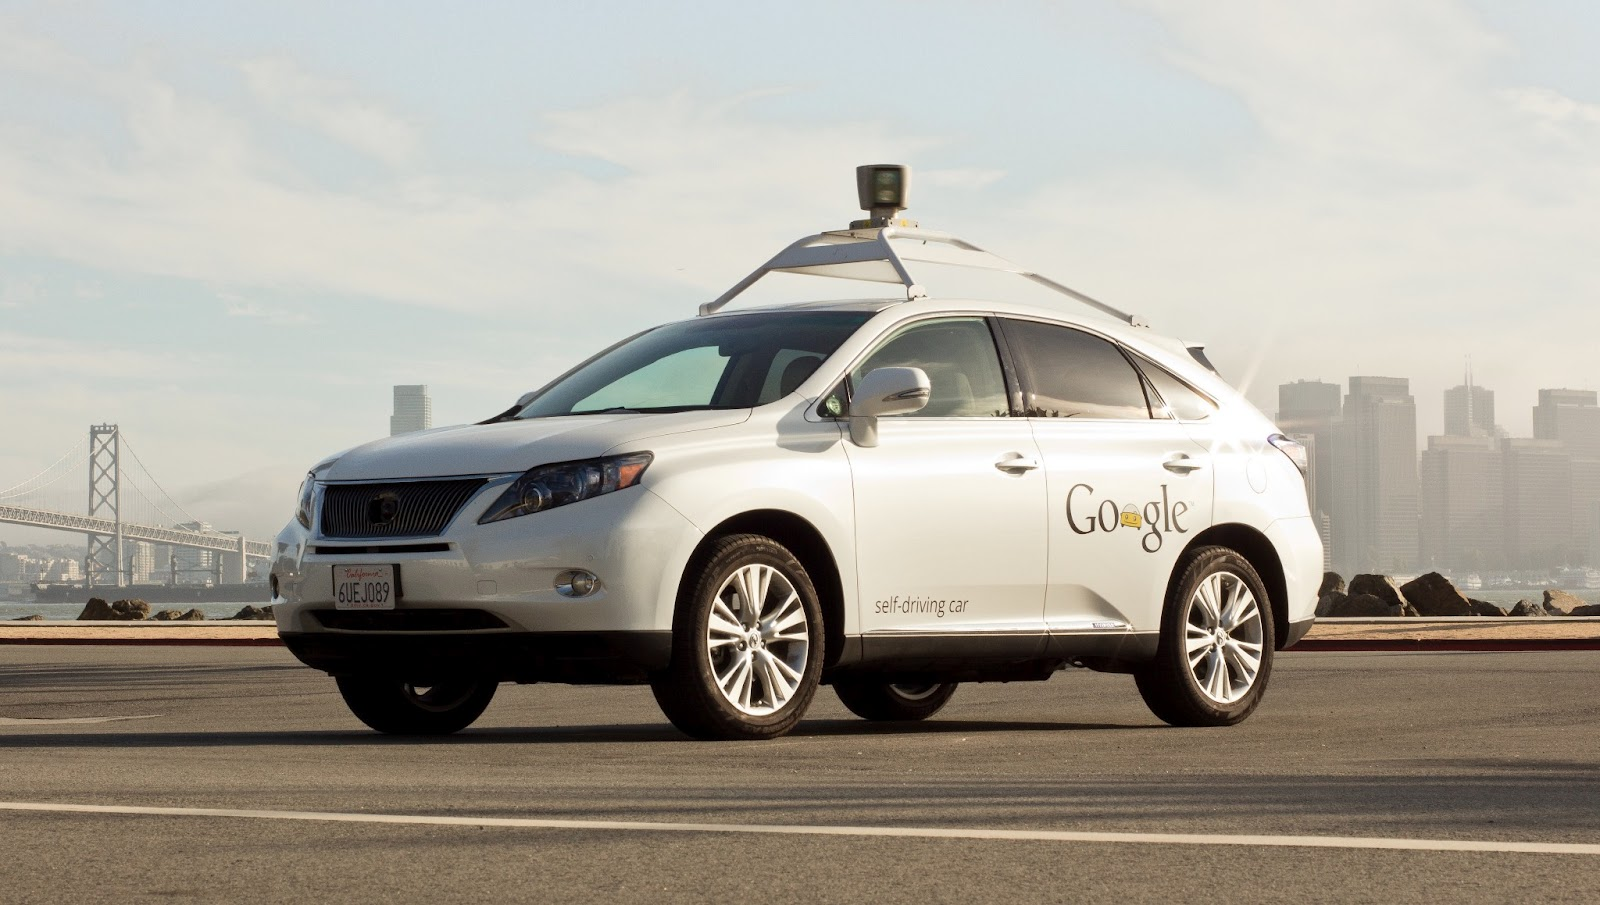 Google self-driving car (image 001)